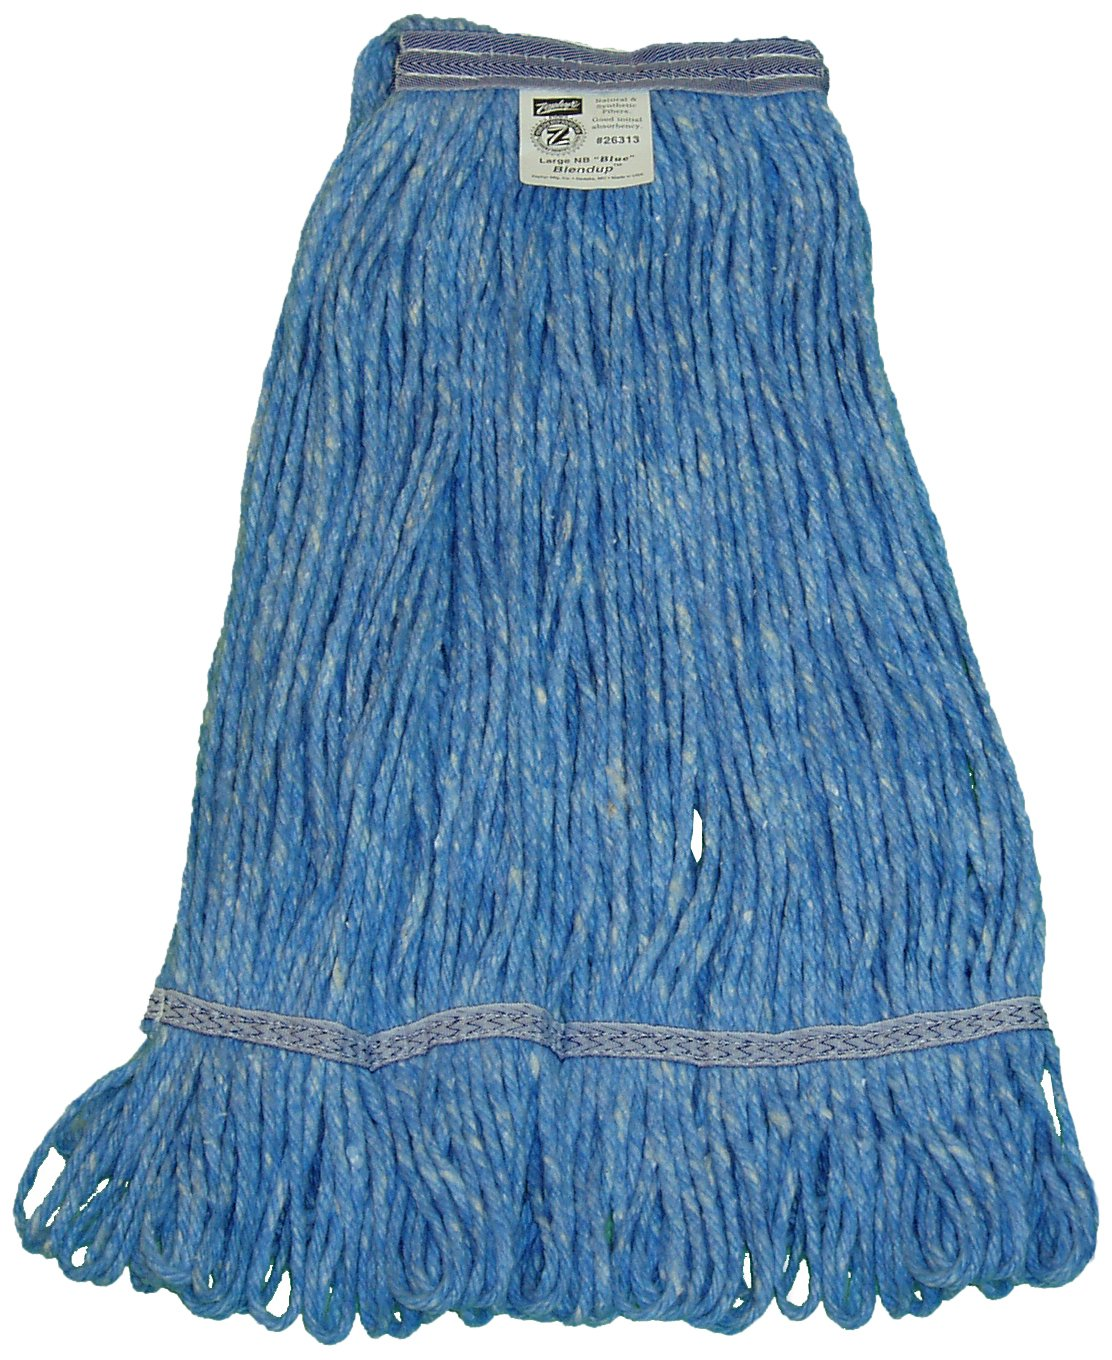 Zephyr 26314 Blendup Blue Blended Natural and Synthetic Fibers X-Large Loop Mop Head with 1-1/4'' Narrow Headbands (Pack of 12) by Zephyr (Image #1)